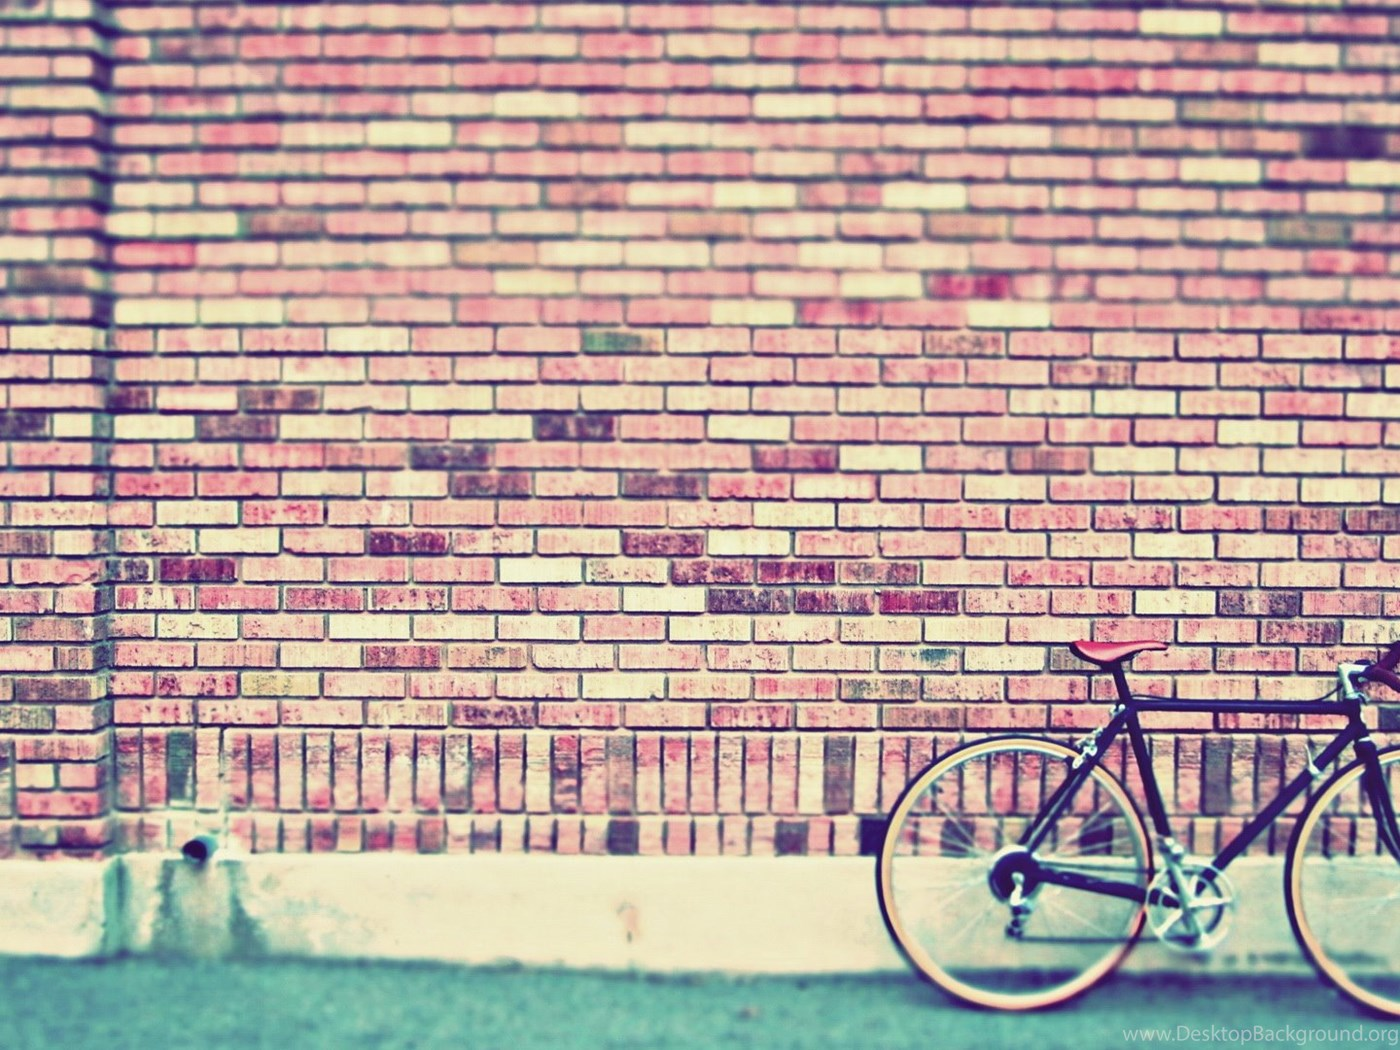 Download 93 Wallpaper Tumblr Vintage Hipster Terbaik